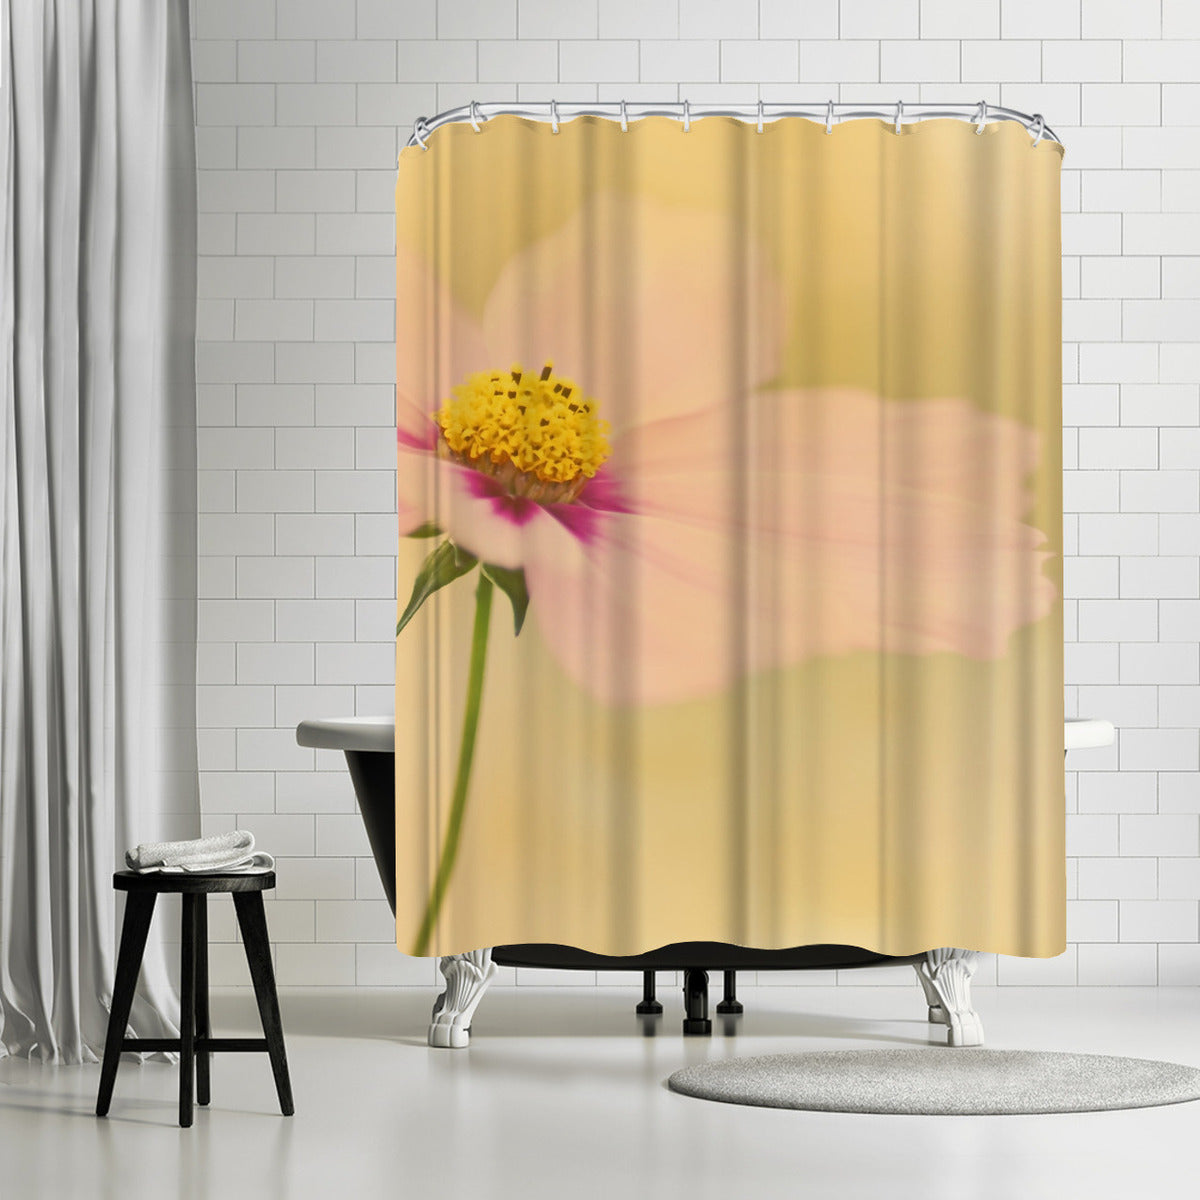 Cosmos Flower Sunset by Mirja Paljakka Shower Curtain